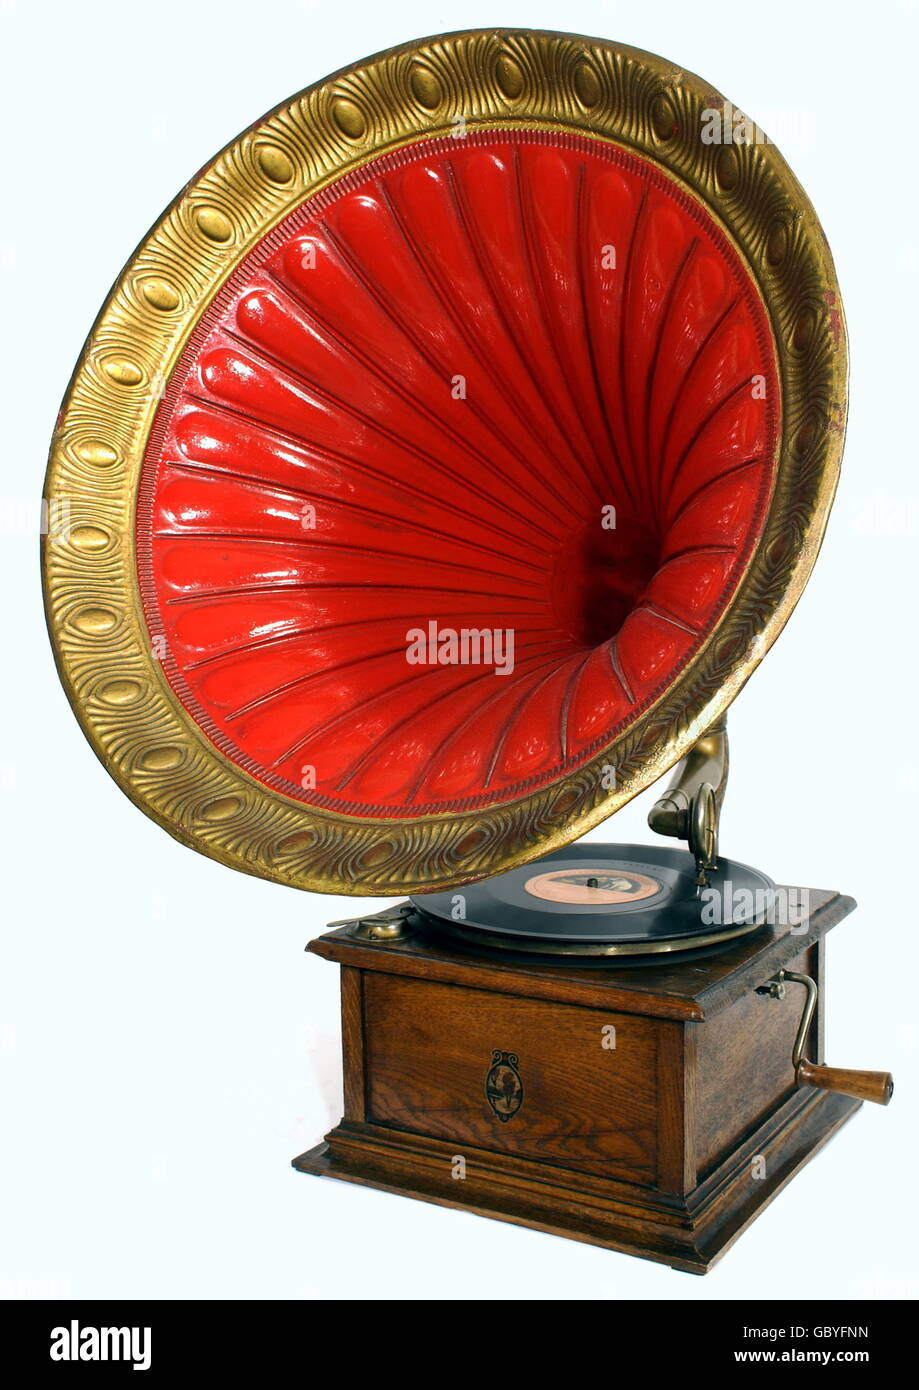 music, musical instruments, gramophone, for children, version Bingola II, made by Bing company, Nuremberg, Germany, - Stock Image